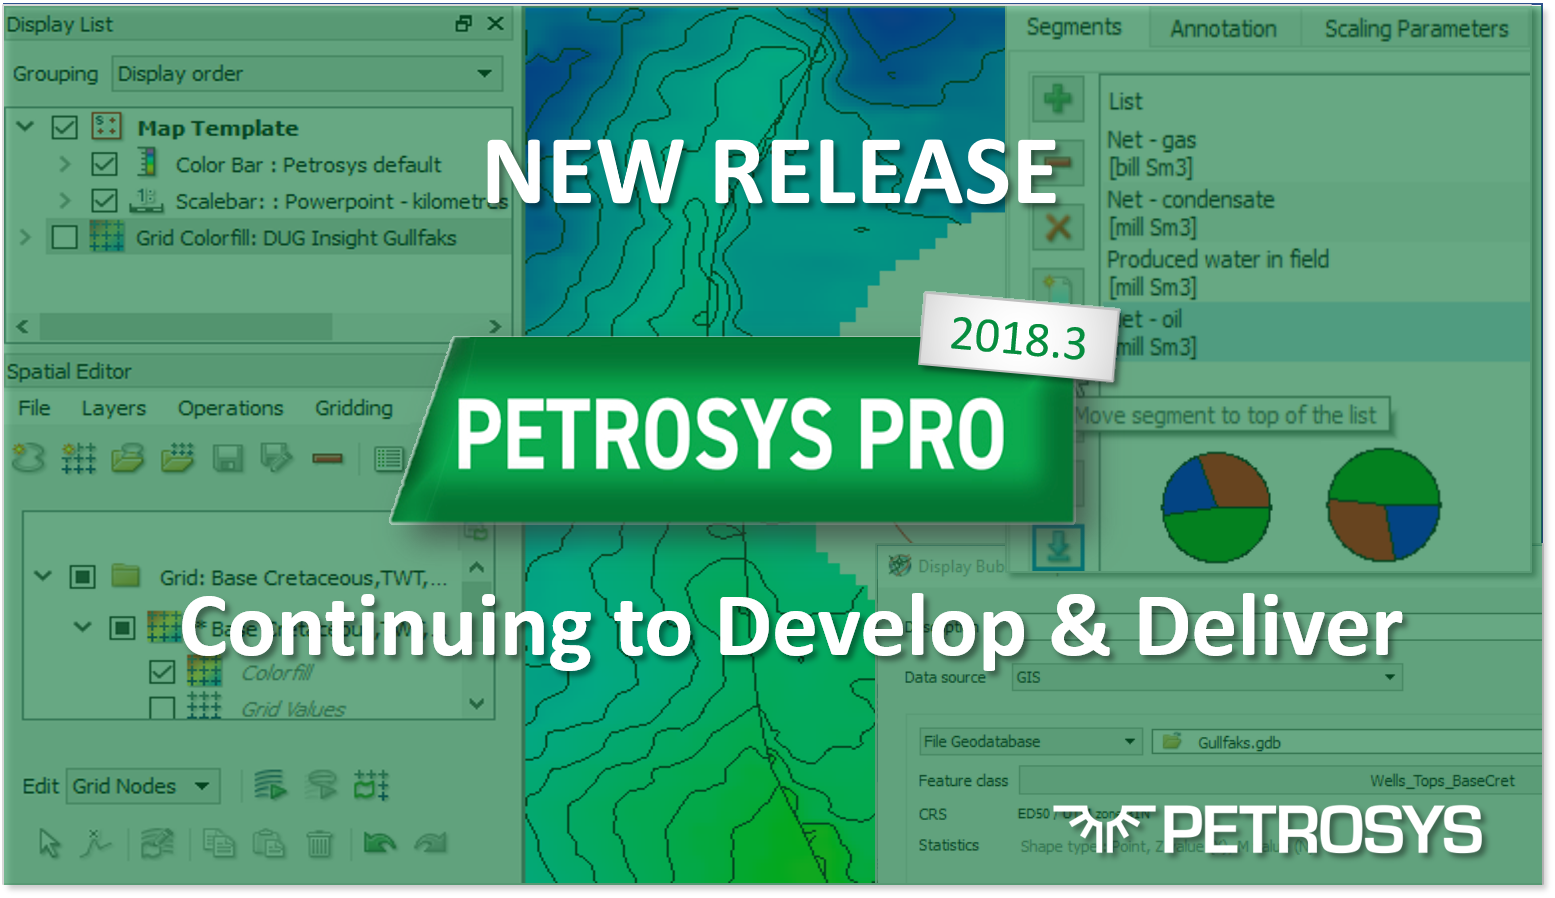 New Release - Petrosys PRO 2018.3